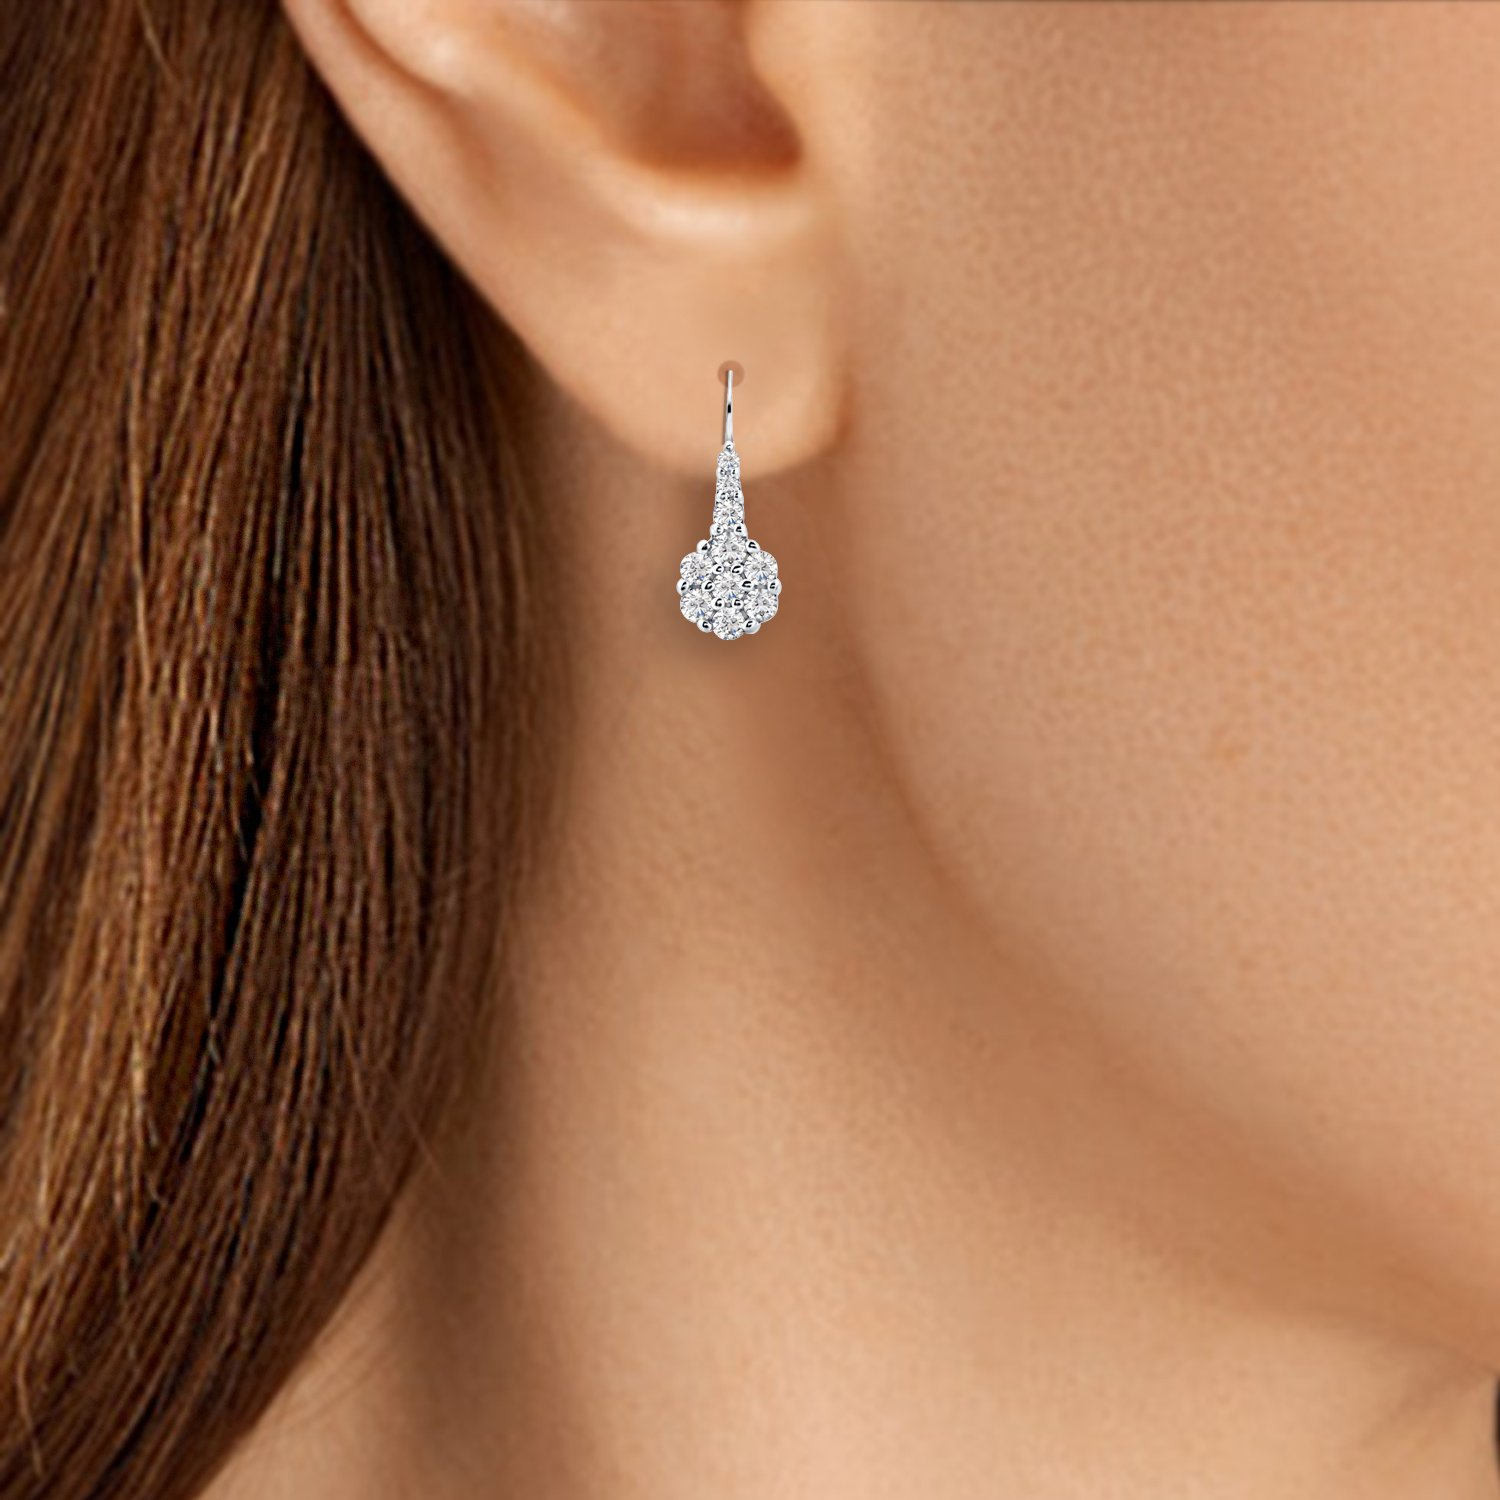 Diamond Scotch Jewelry 0.50 Ct Round Cubic Zirconia Cluster Flower Lever Back Dangle Earrings 14k White Gold Over